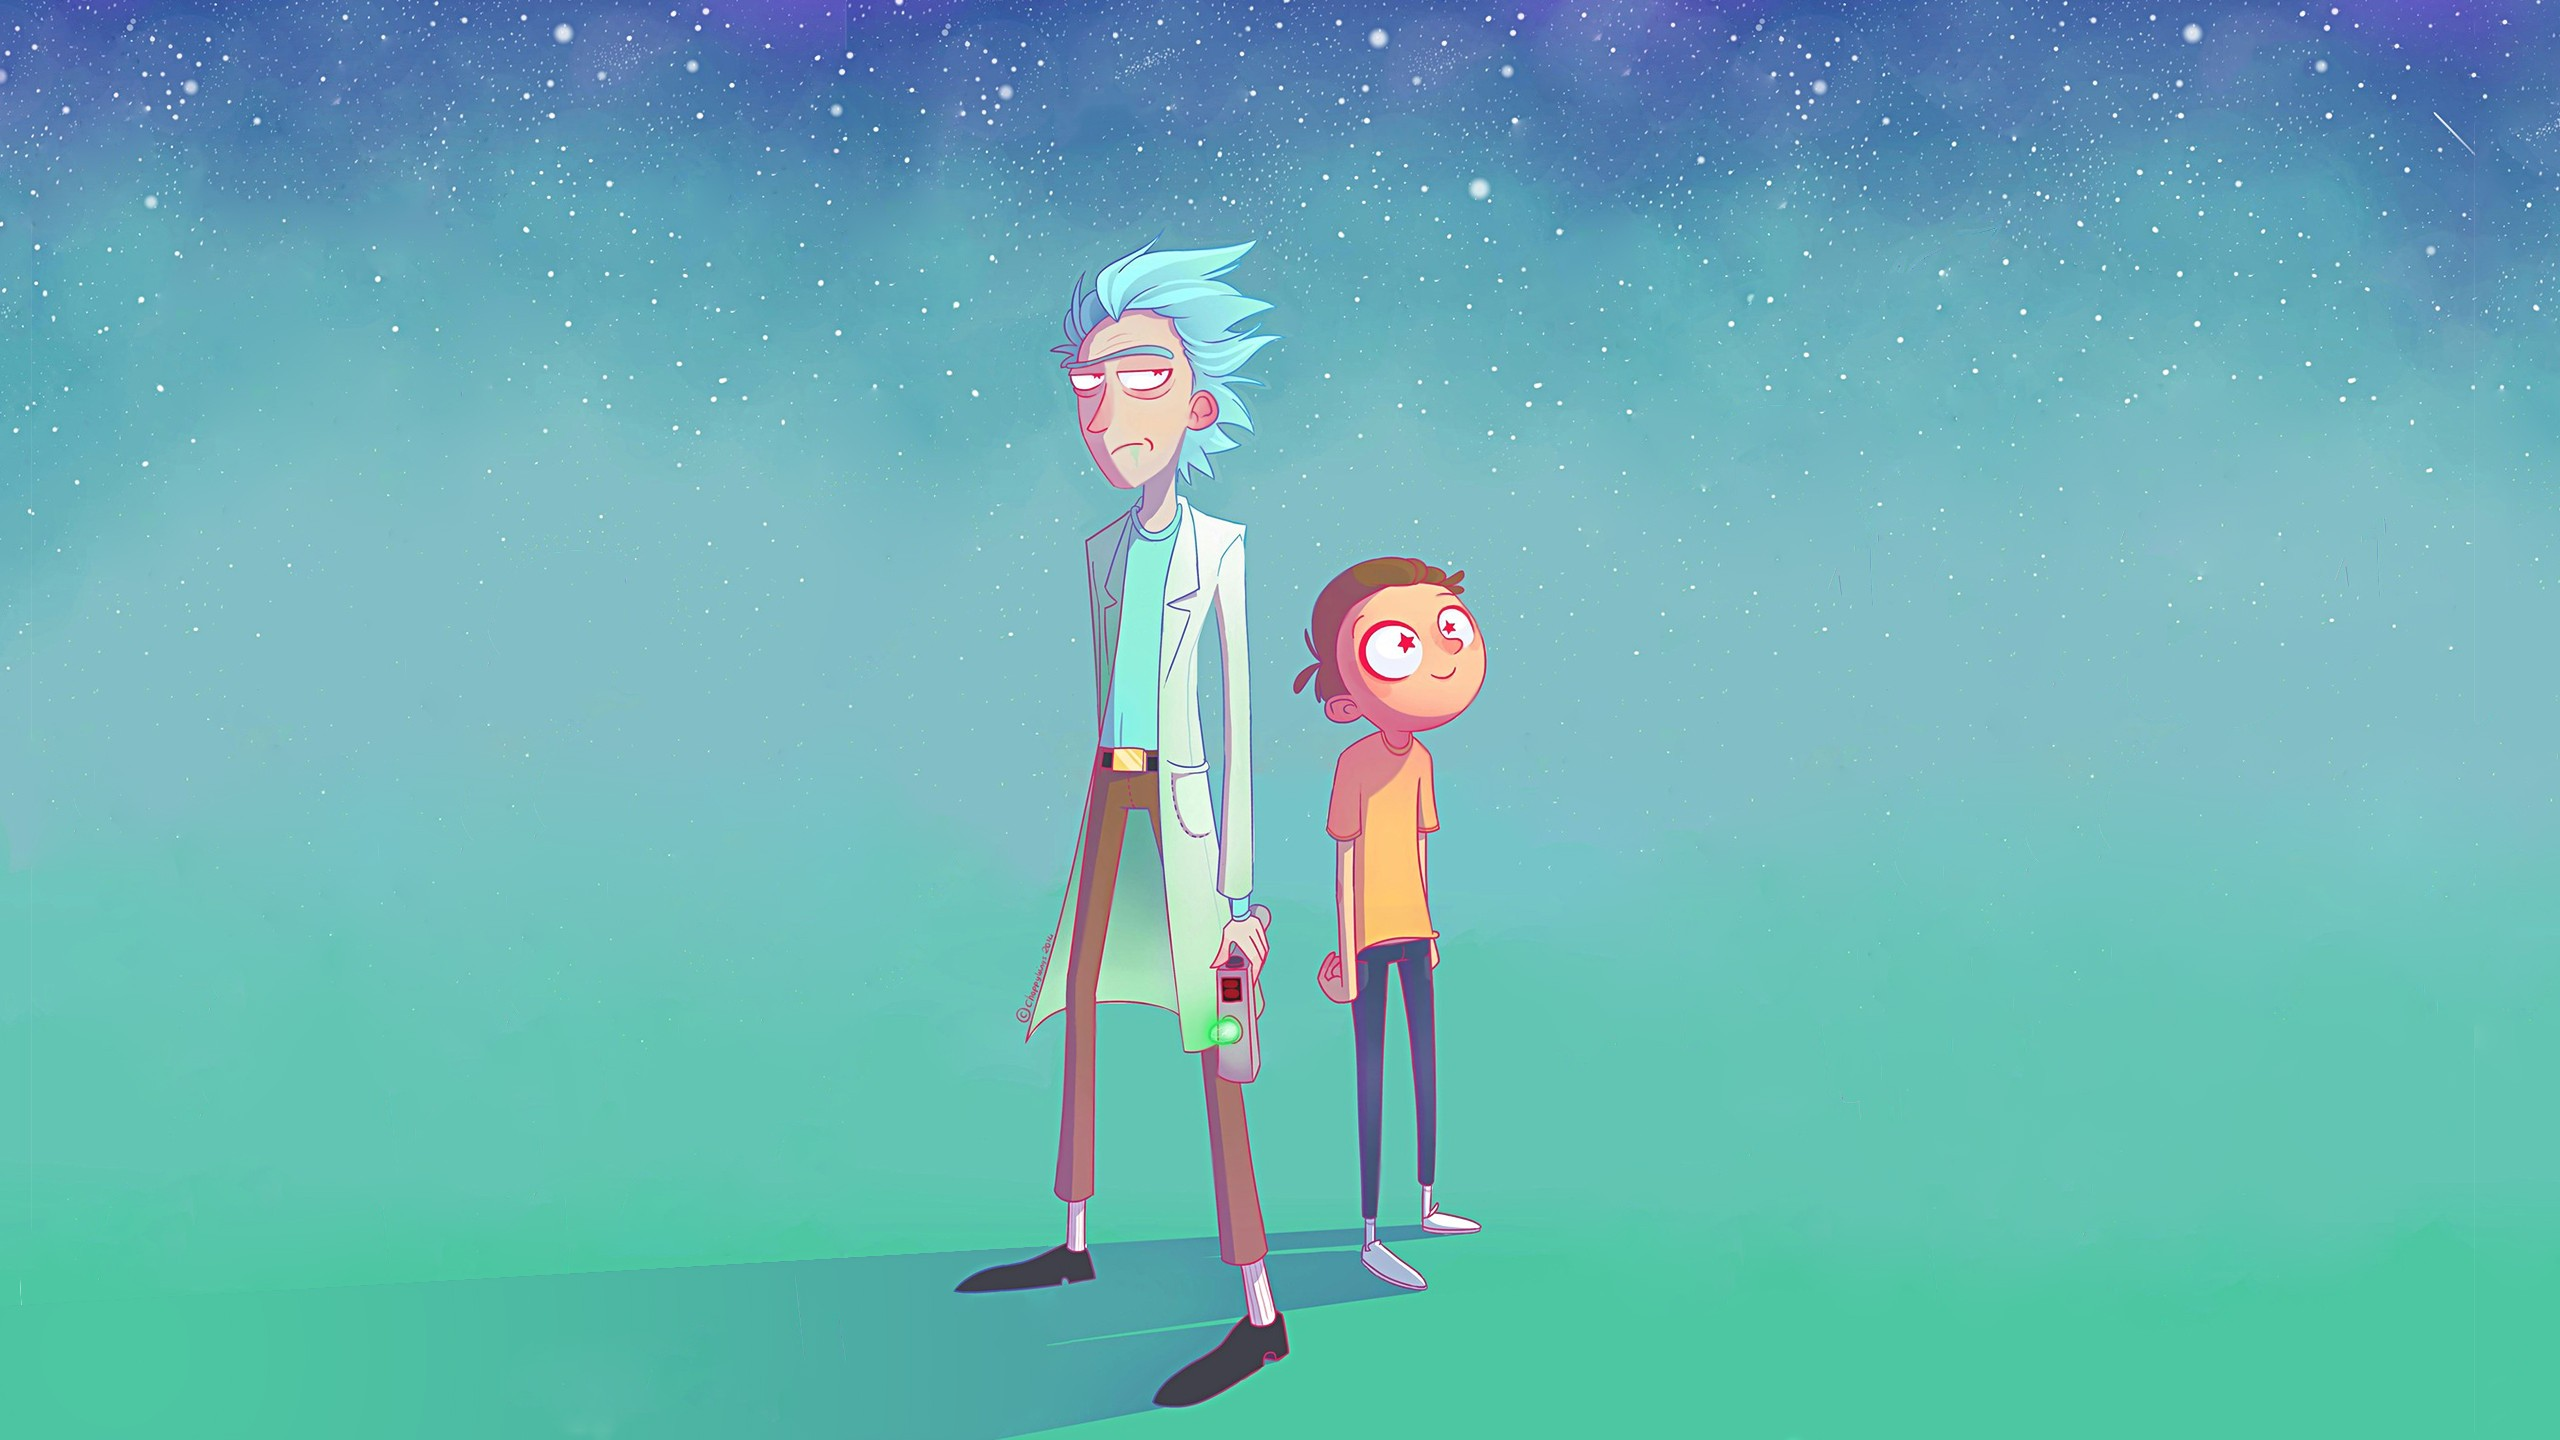 Custom Iphone X Wallpaper Rick And Morty Wallpaper 183 ① Download Free Hd Wallpapers Of